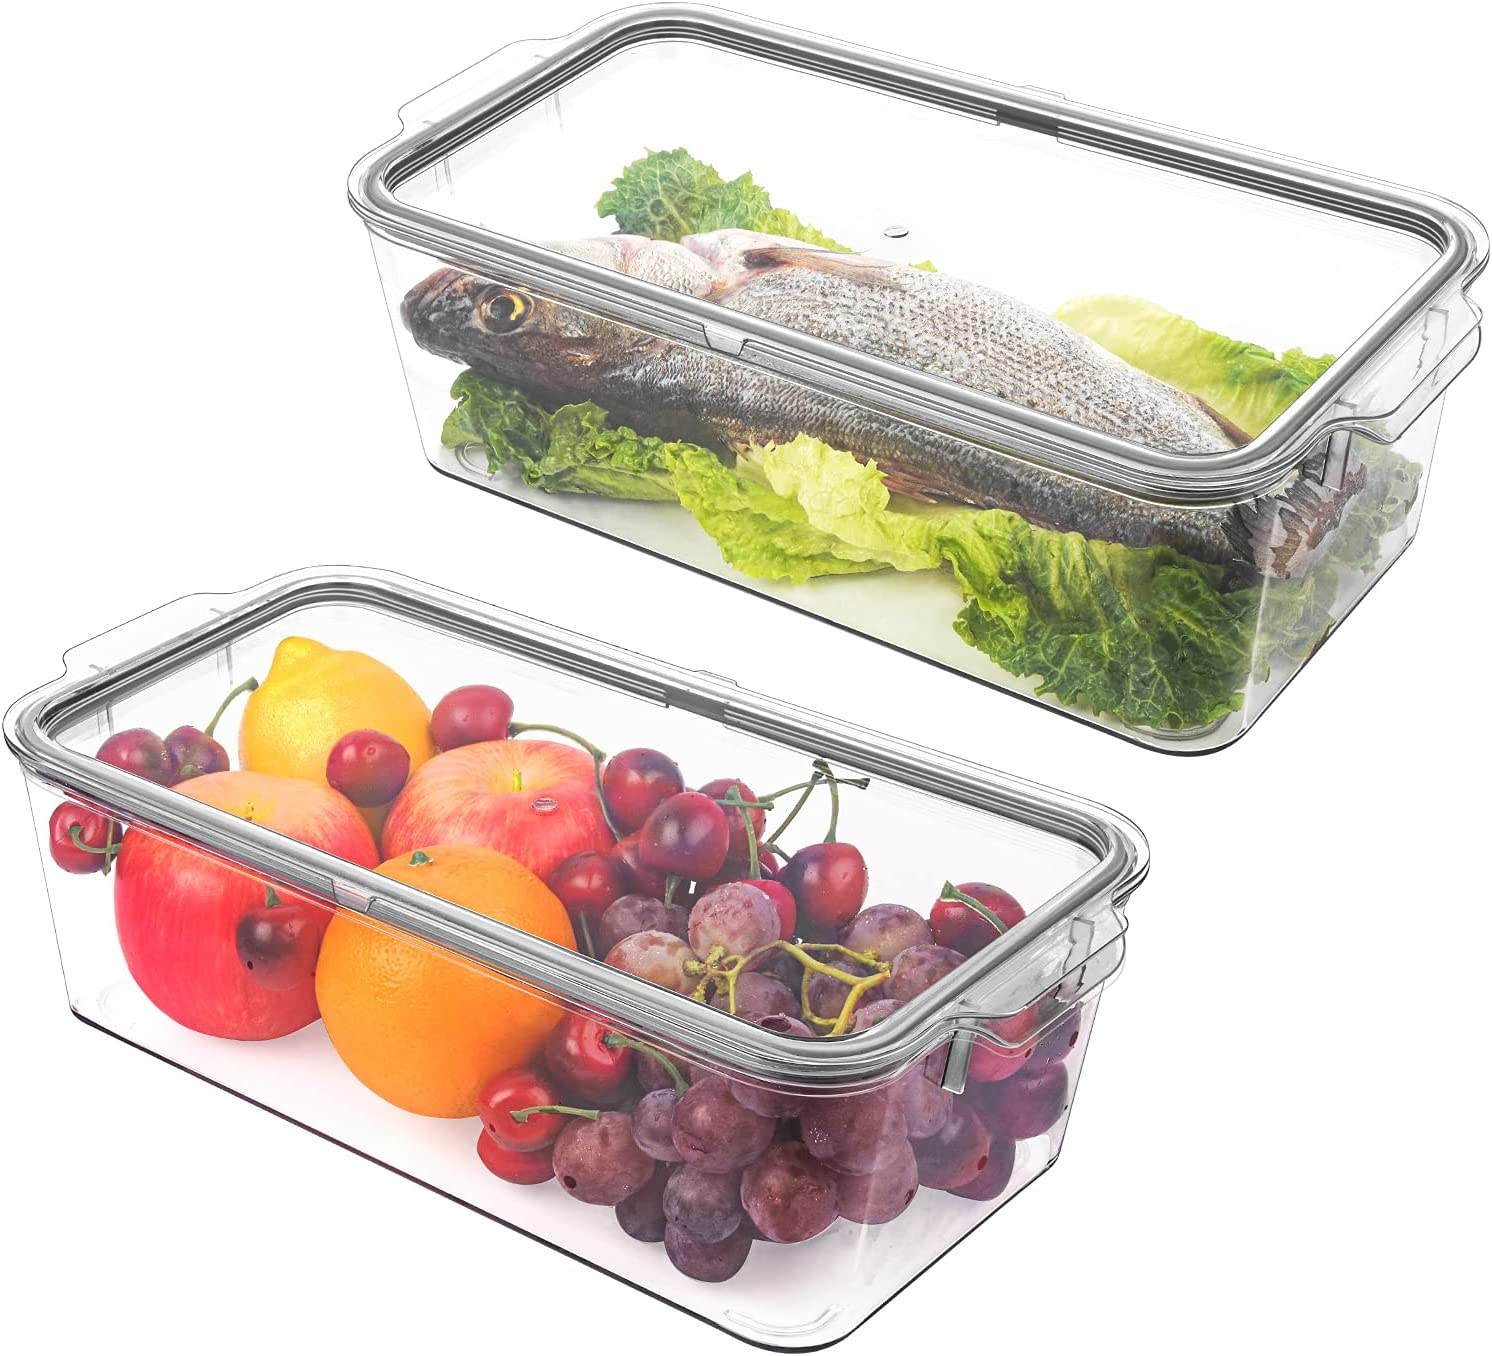 Refrigerator Organizer Bins with Sealing Lid, PET Airtight Large Clear Stackable Food Storage Container Set with Handles, GLSOGL 2 Pack Plastic BPA Free Pantry Organization for Fridge, Freezer